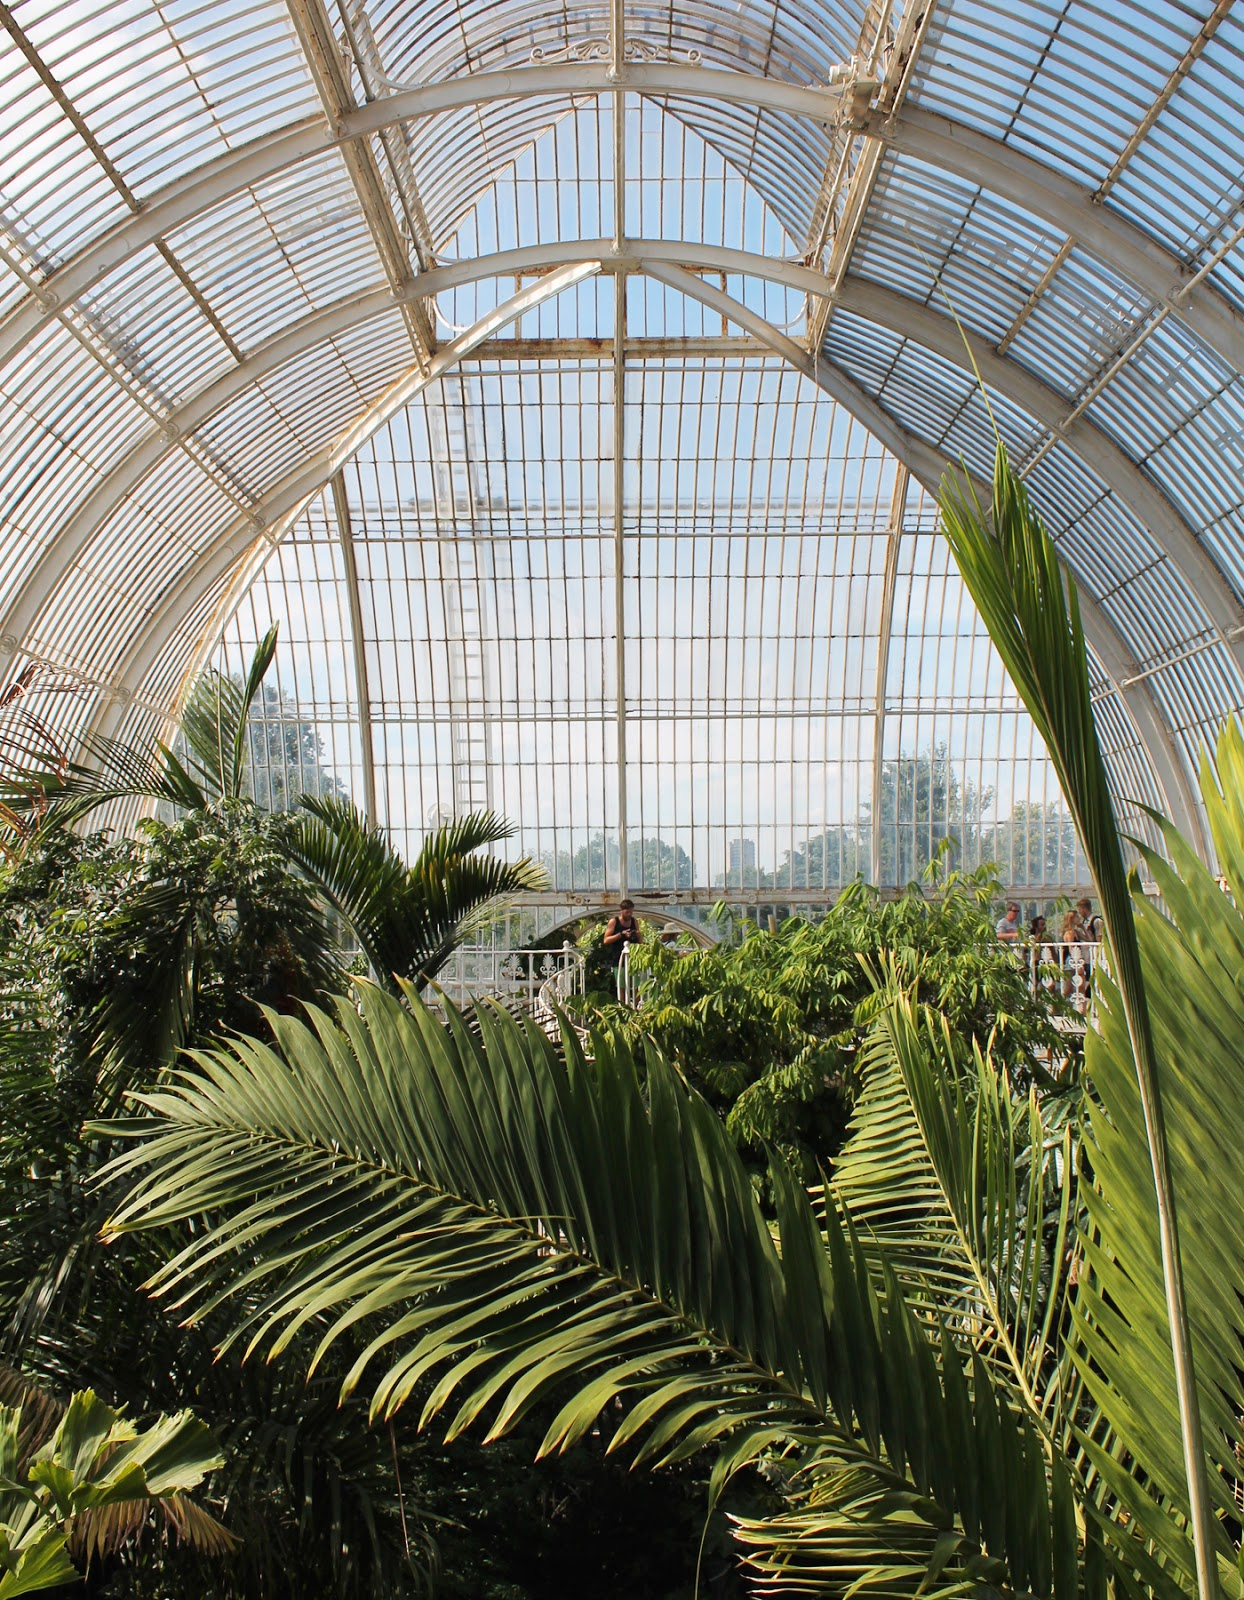 Kew Gardens, Things to do in London